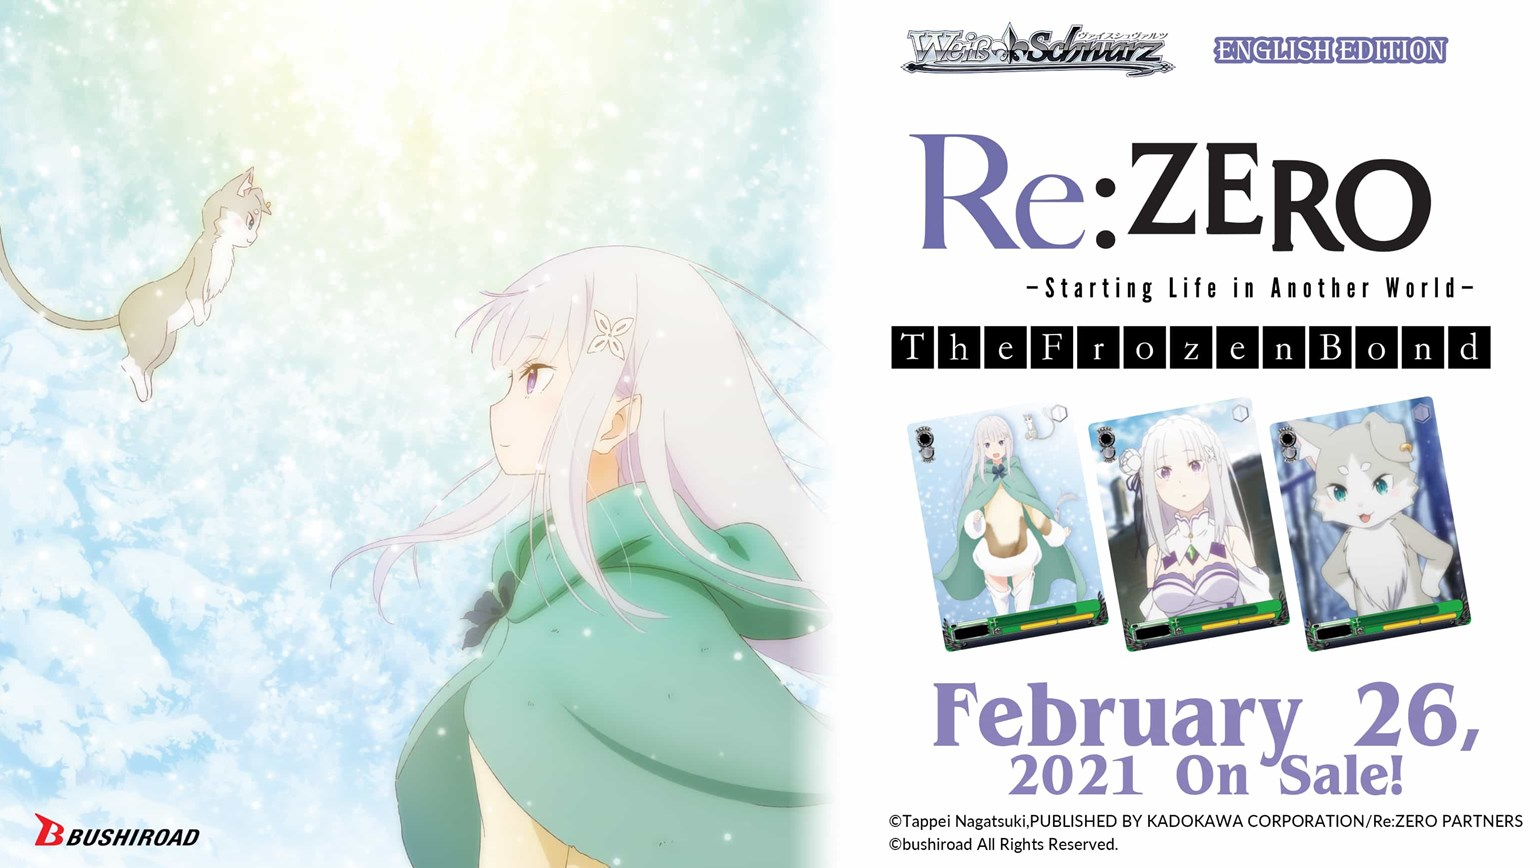 Weiss Schwarz: Re:ZERO -Starting Life in Another World- The Frozen Bond On Sale February 26th!